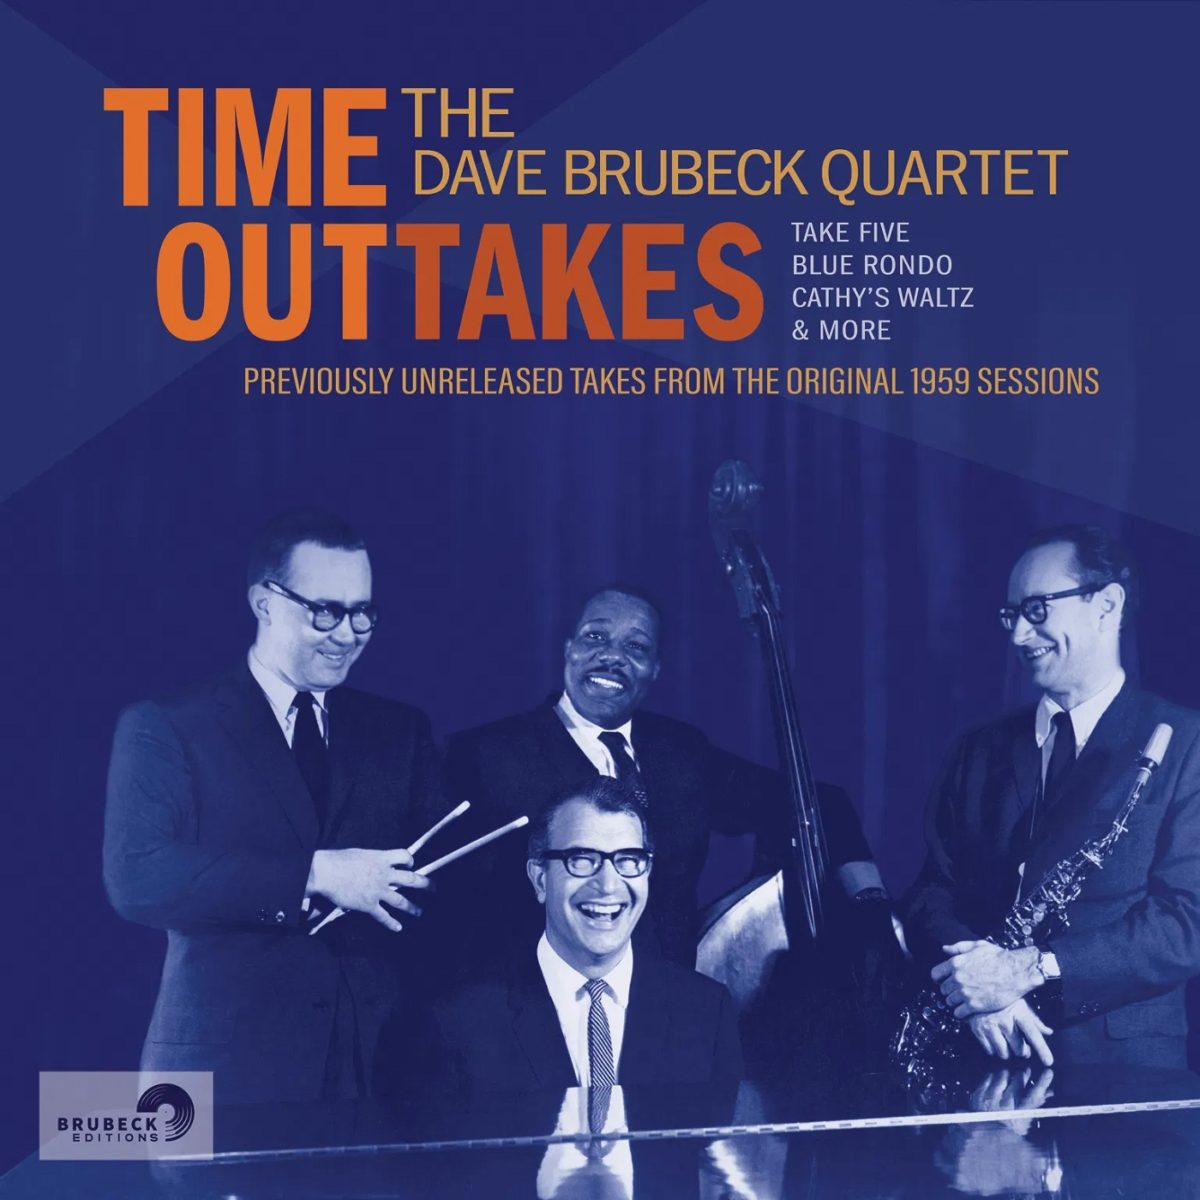 time outtakes - dave brubeck - 2020